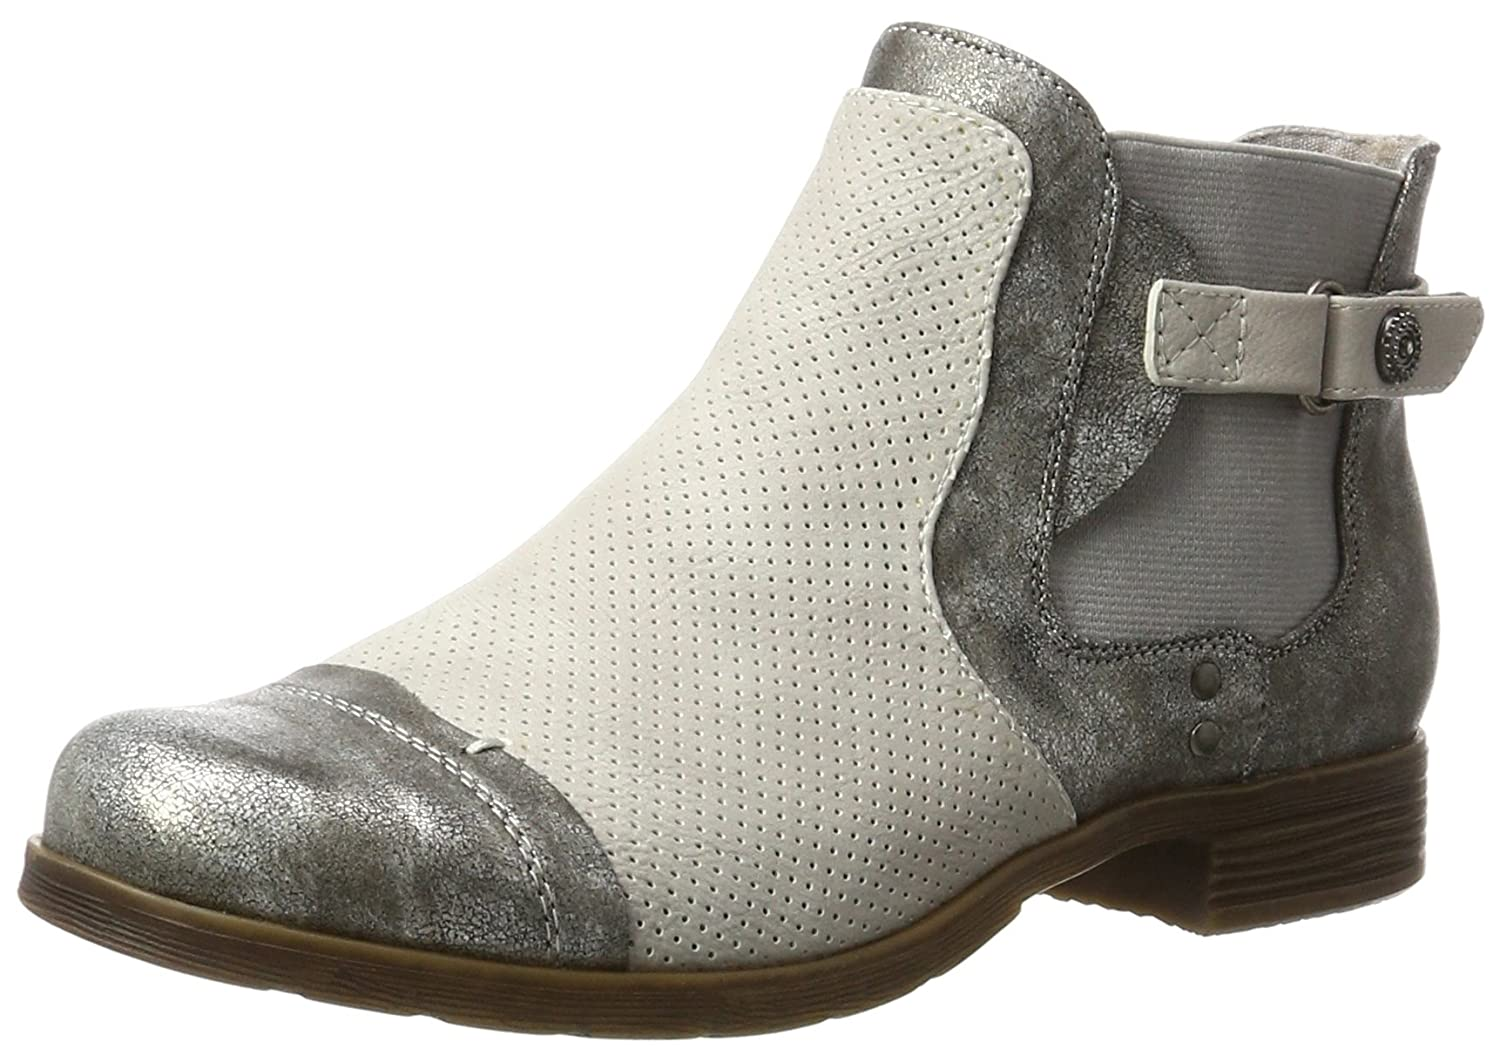 Supremo 2722301, Bottines Femme Supremo Bottines Gris 2722301, (Grey-ice 01545) af40937 - deadsea.space